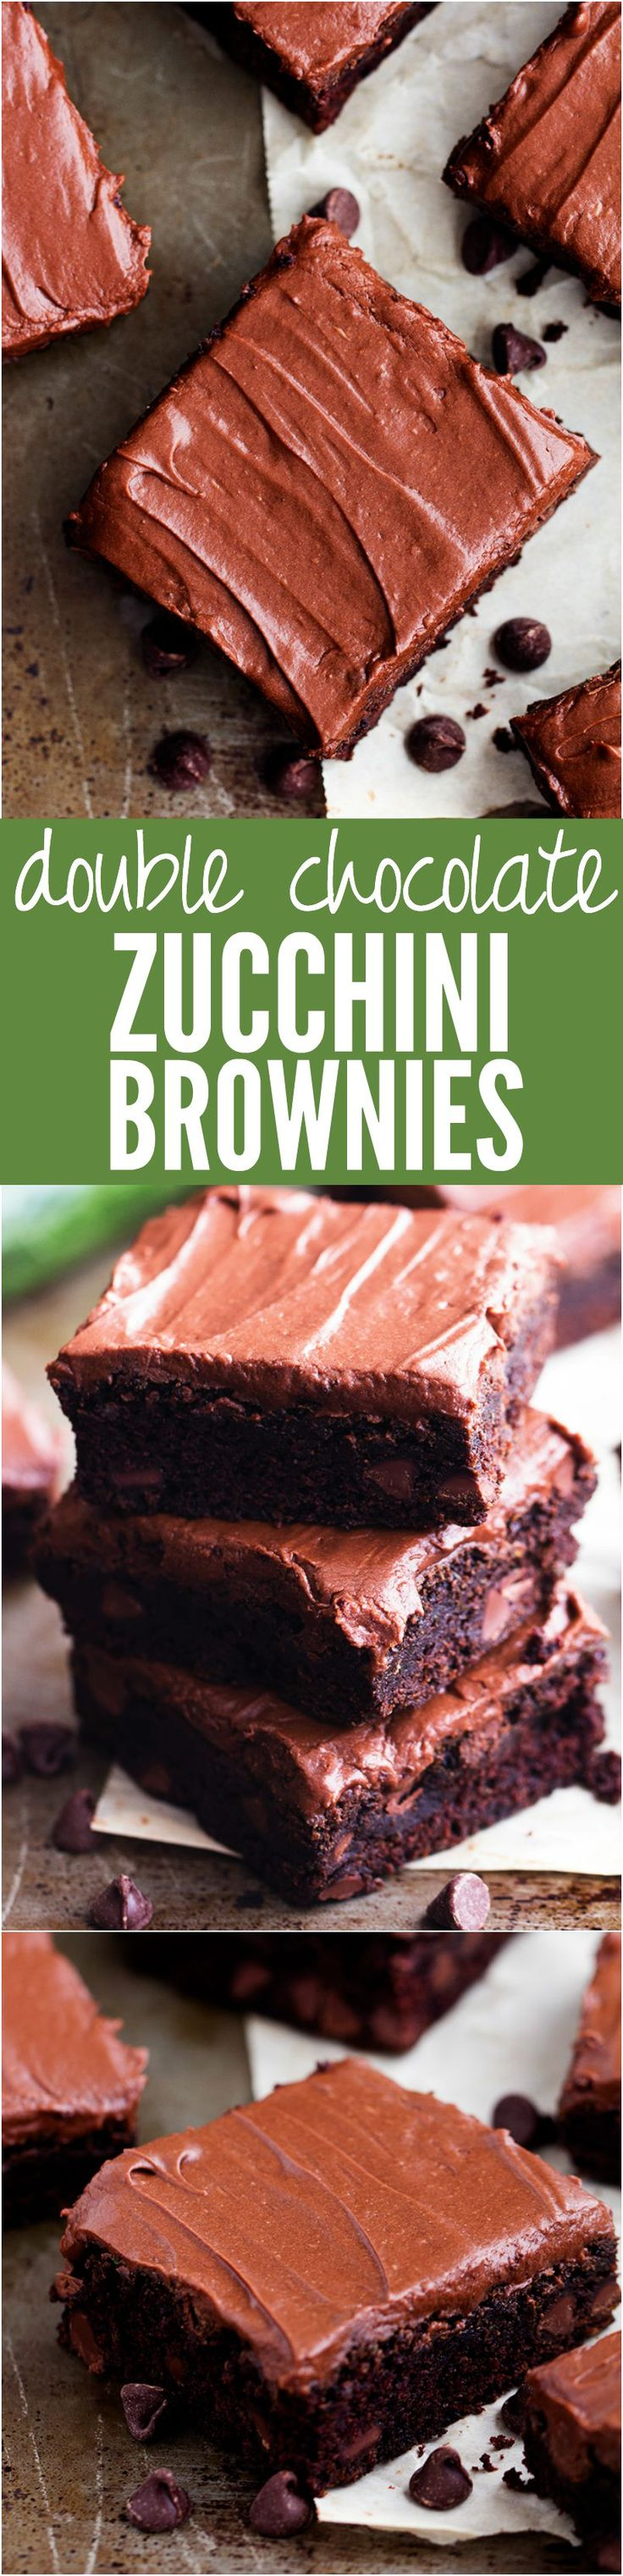 These are the BEST chocolate zucchini brownies! 2 cups of zucchini are hidden inside of these moist and perfect brownies!